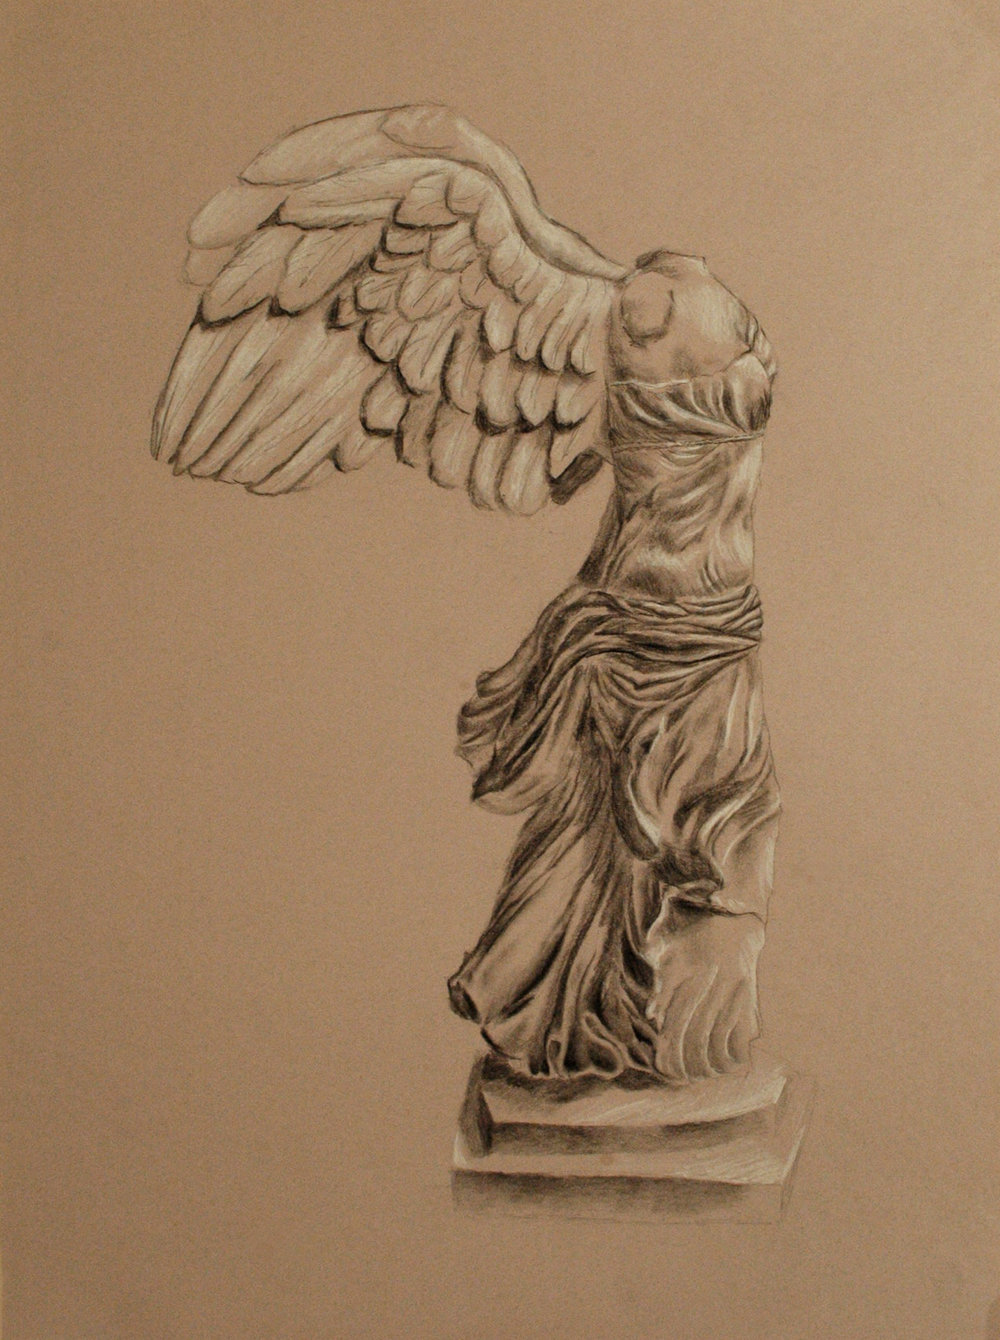 Carolyn_Byers_study_of_Winged_Victory_of_Samothrace_DO_NOT_USE_WITHOUT_PERMISSION.jpg